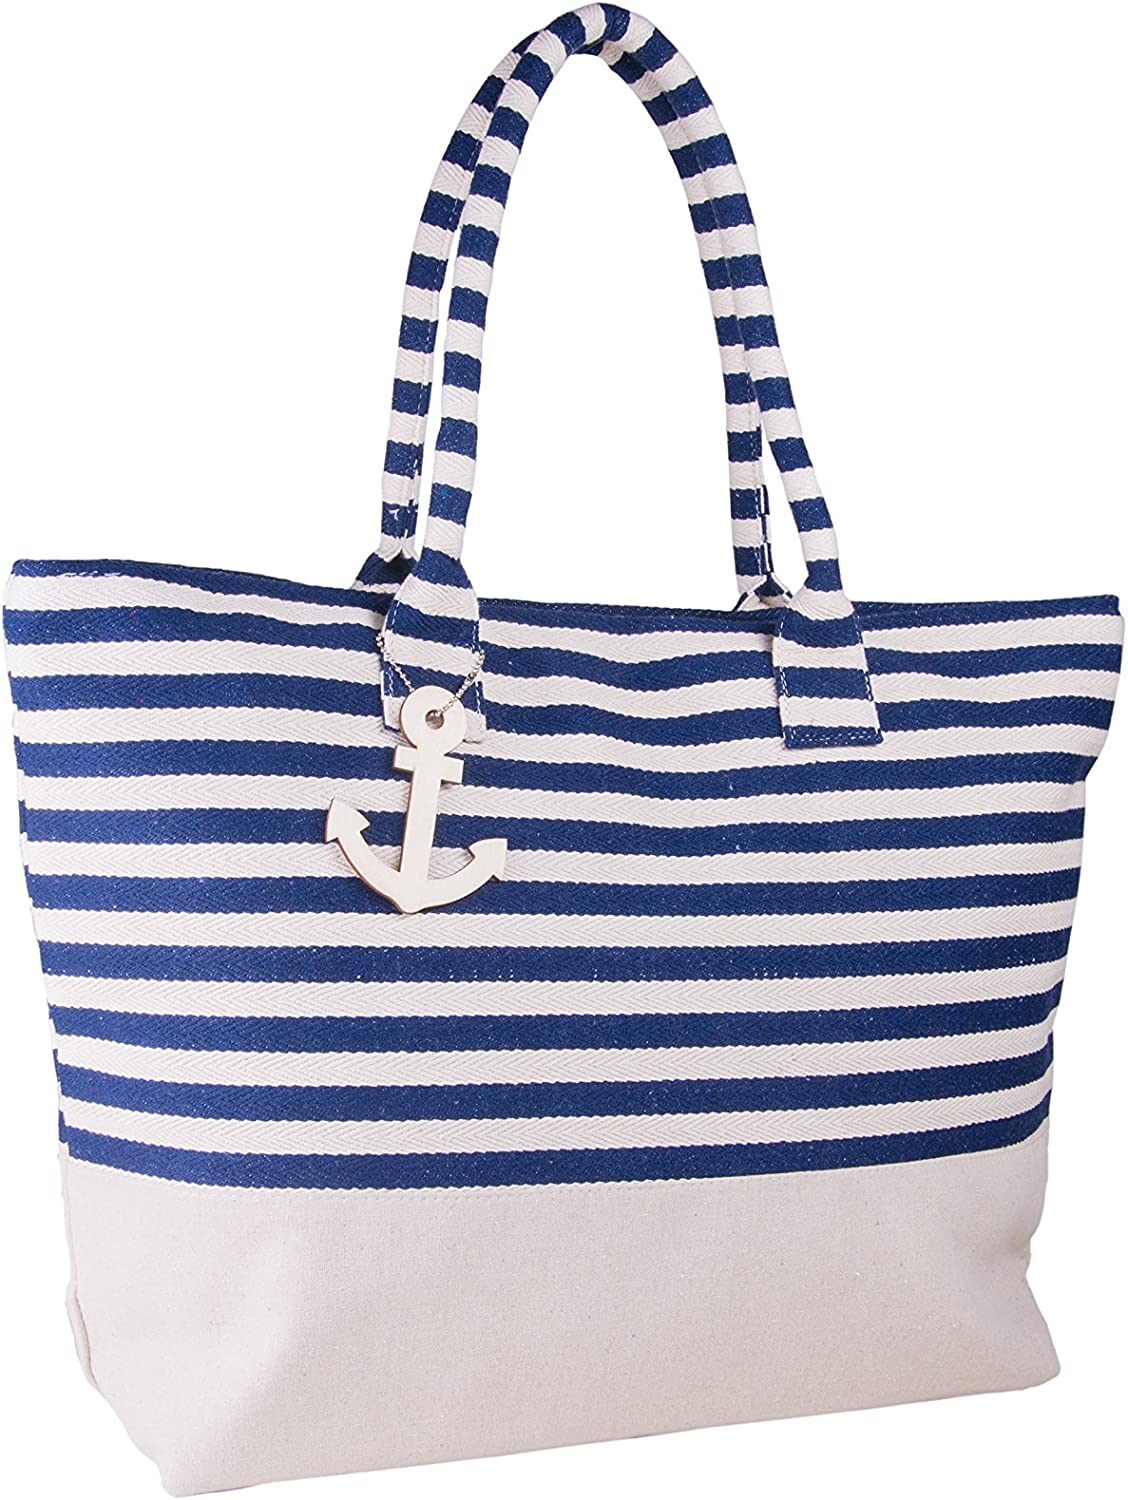 22  Large Canvas Shopping Beach Tote Bag w Zipper Closure